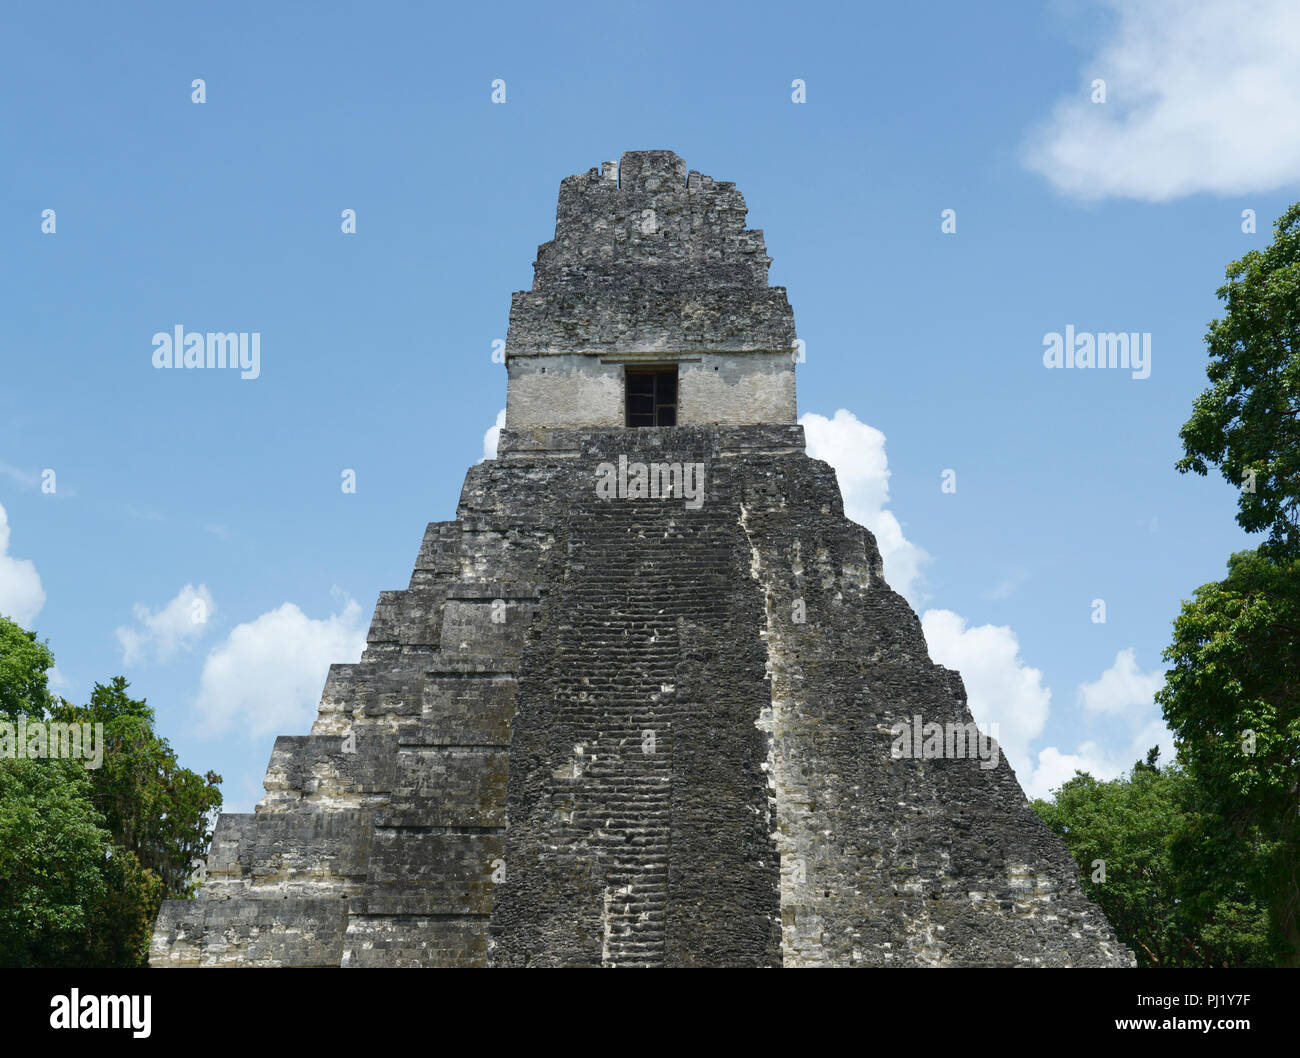 Tikal, Mayan ruins, Guatemala with Temple 1 - Stock Image